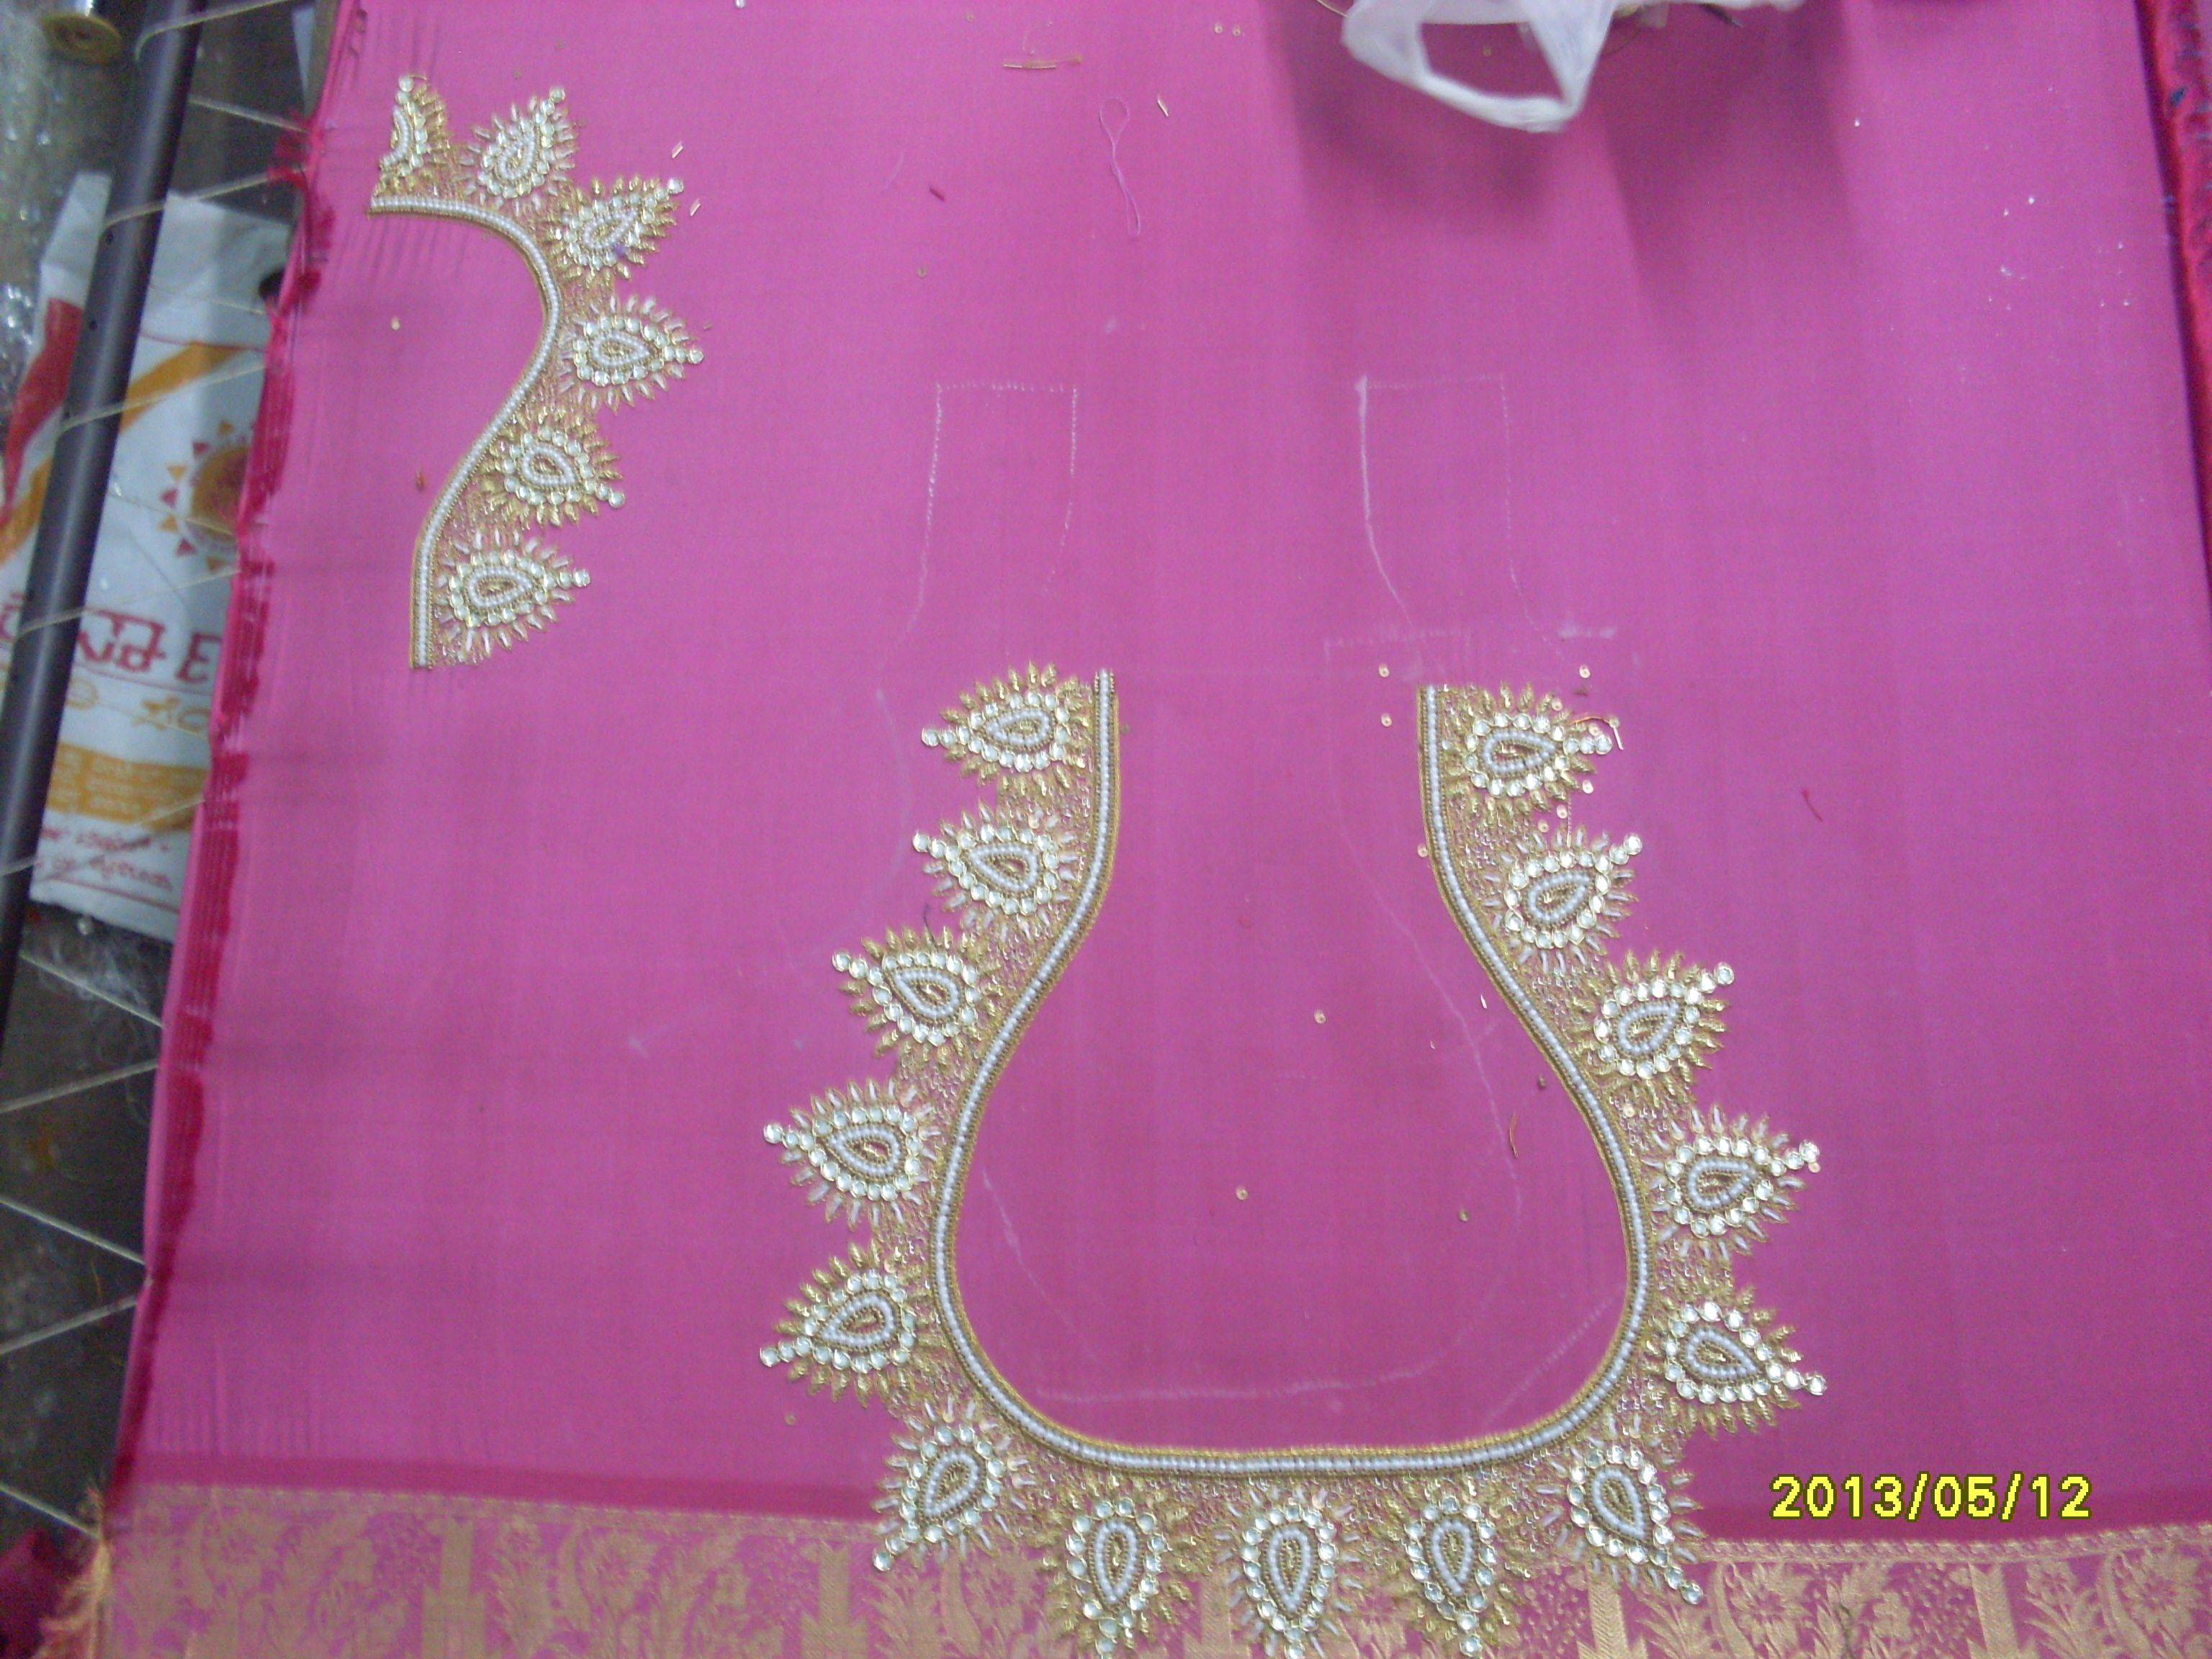 About apoorva embroidery this is a embroidery factoryit was started